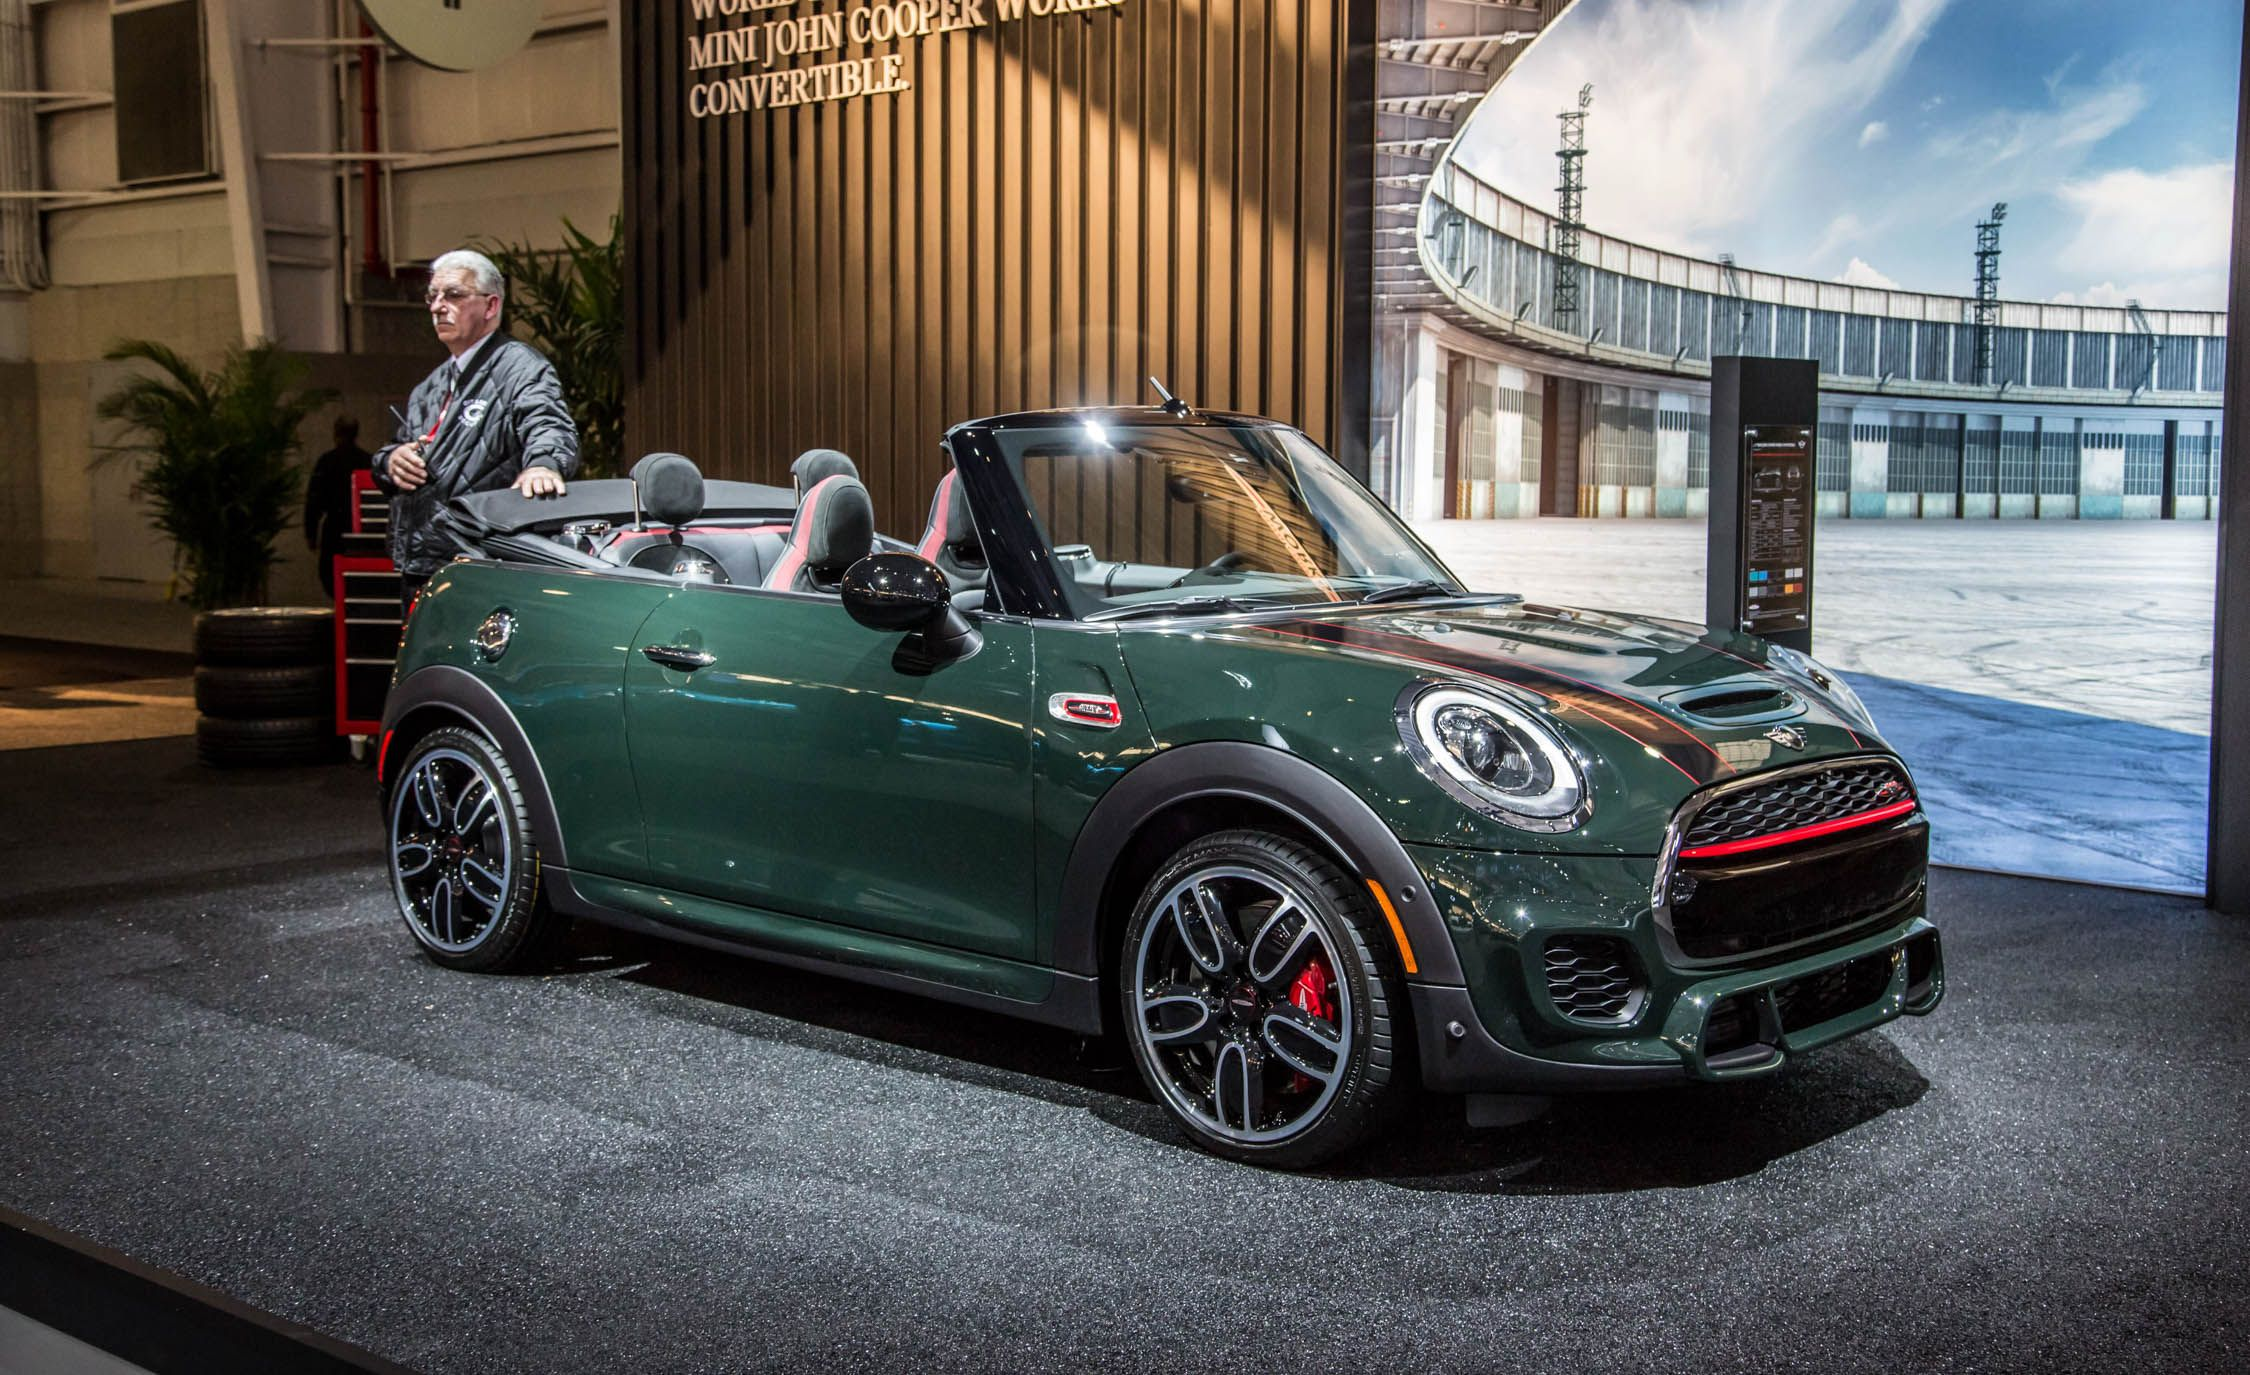 Toyota Build And Price >> 2016 Mini Cooper Convertible S / JCW Pictures | Photo ...